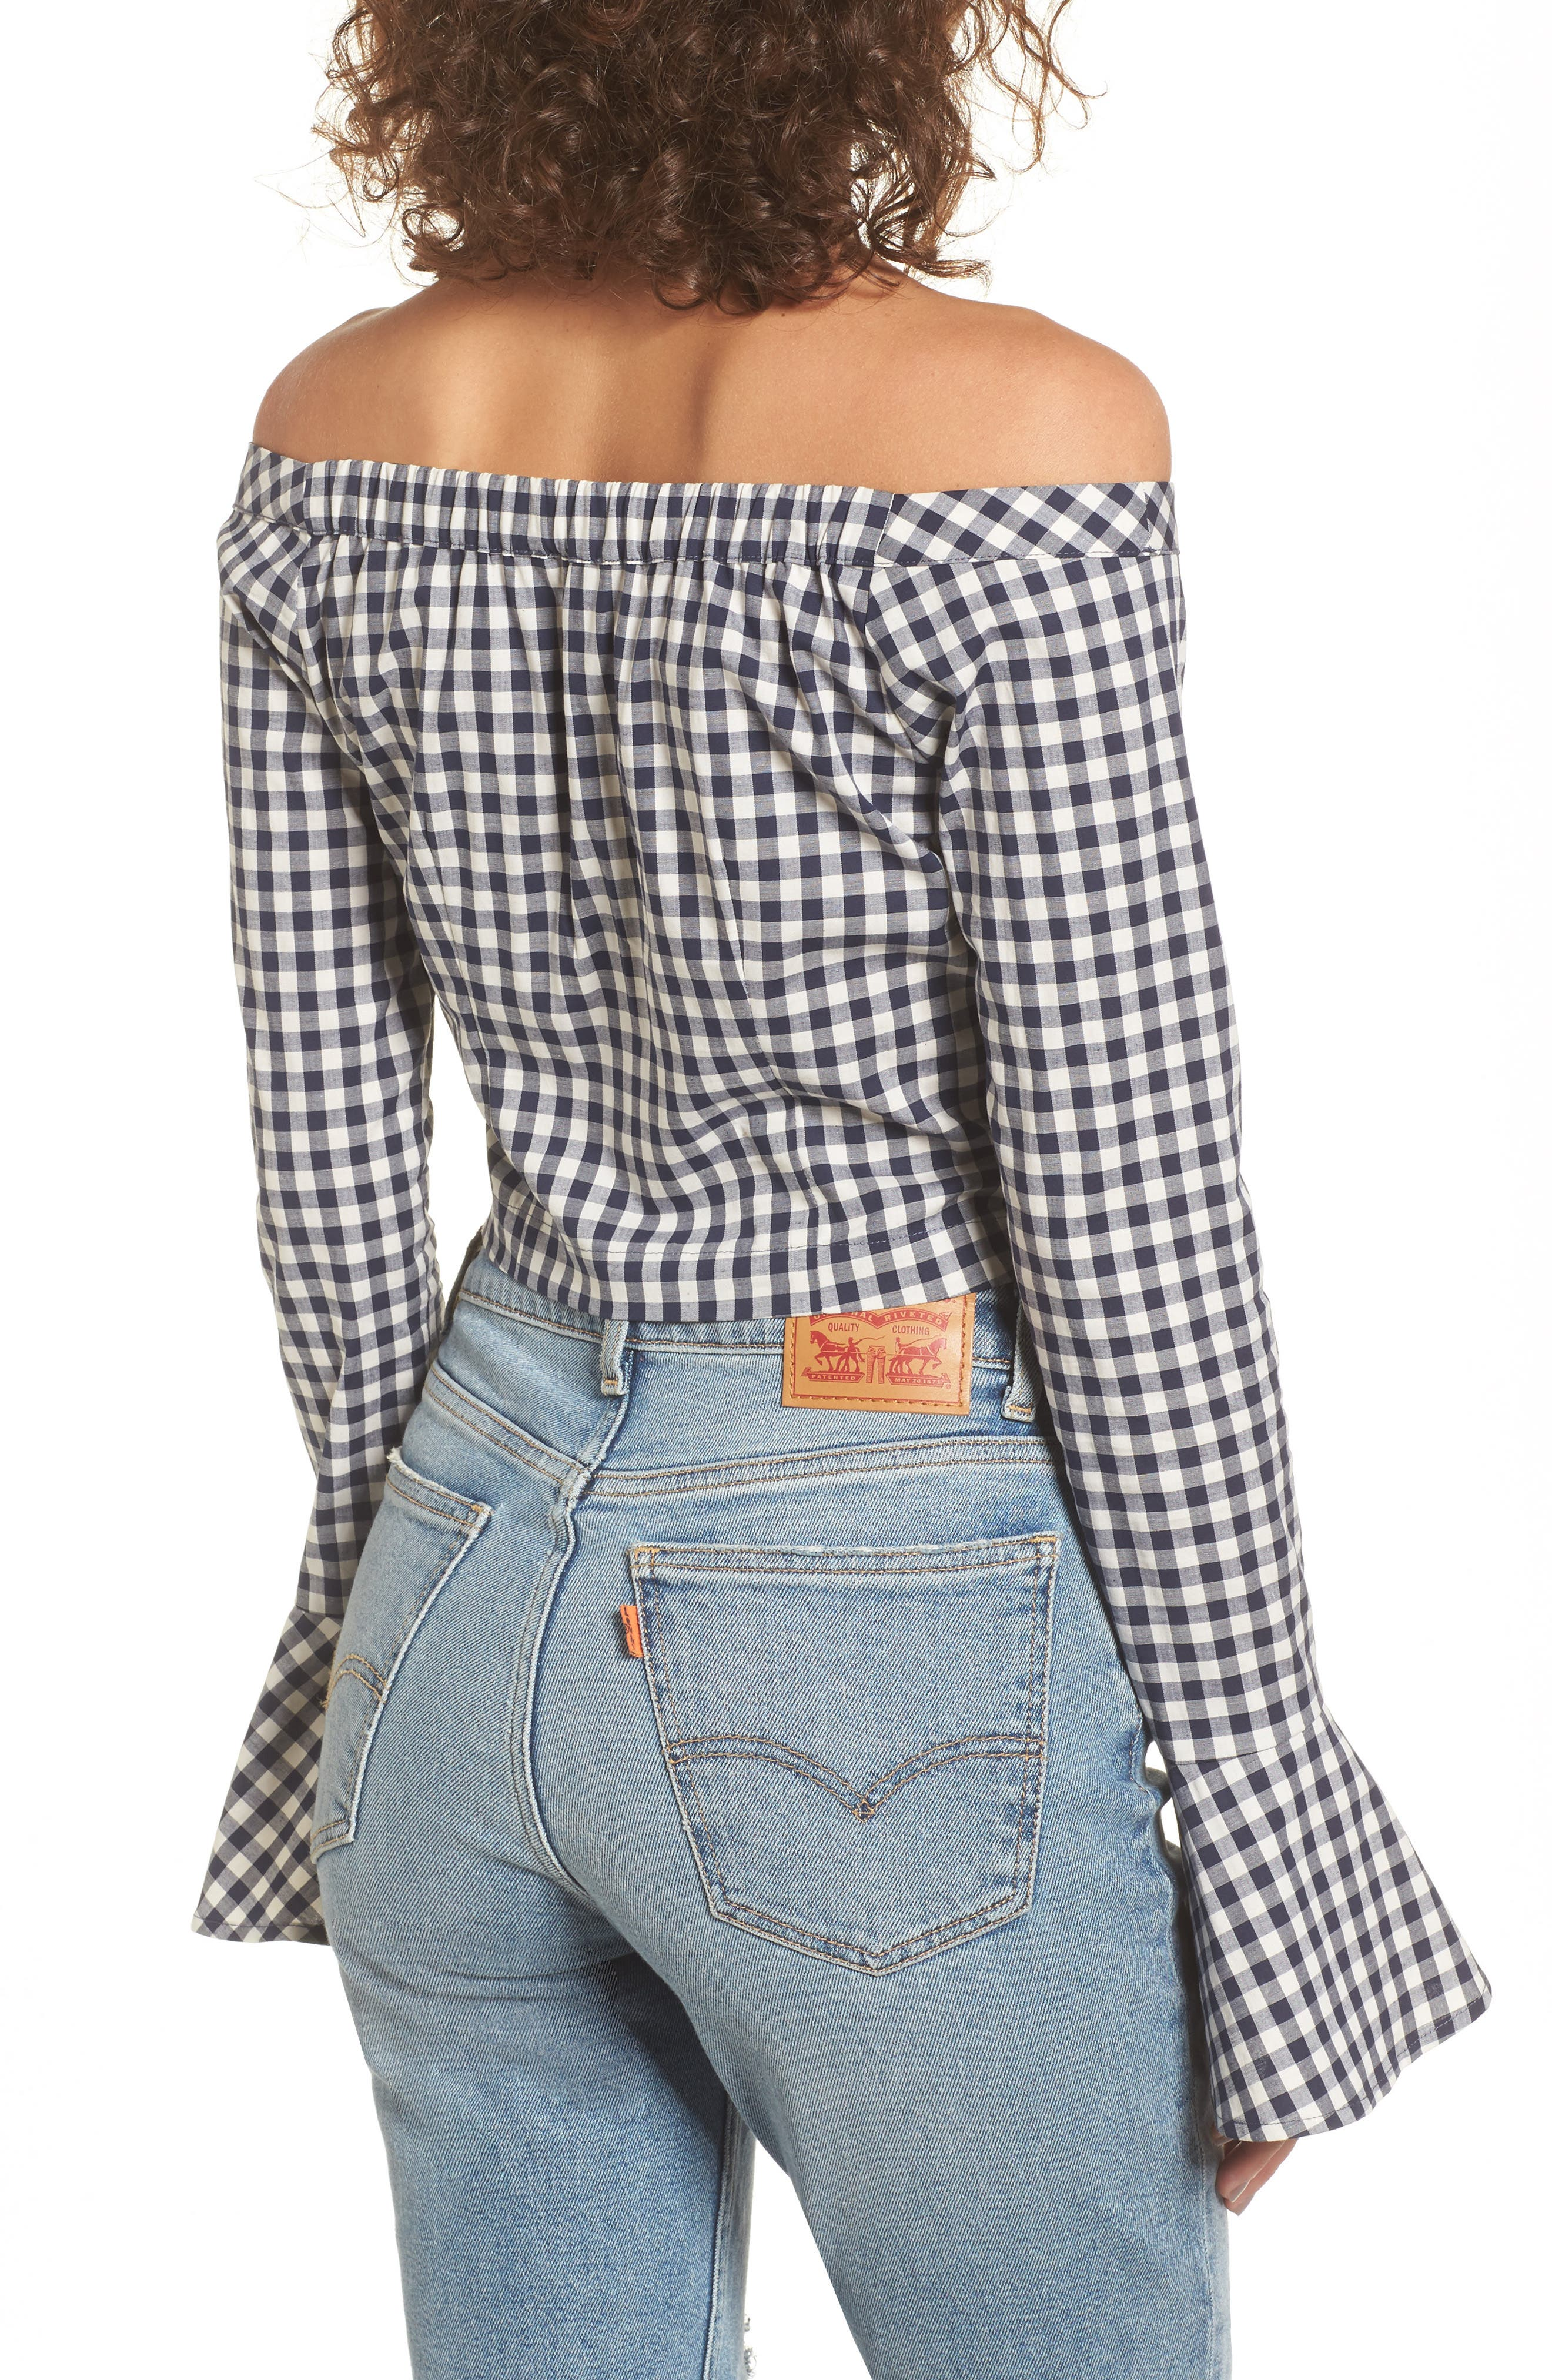 Bell Sleeve Off the Shoulder Crop Top,                             Alternate thumbnail 2, color,                             Navy/ White Gingham